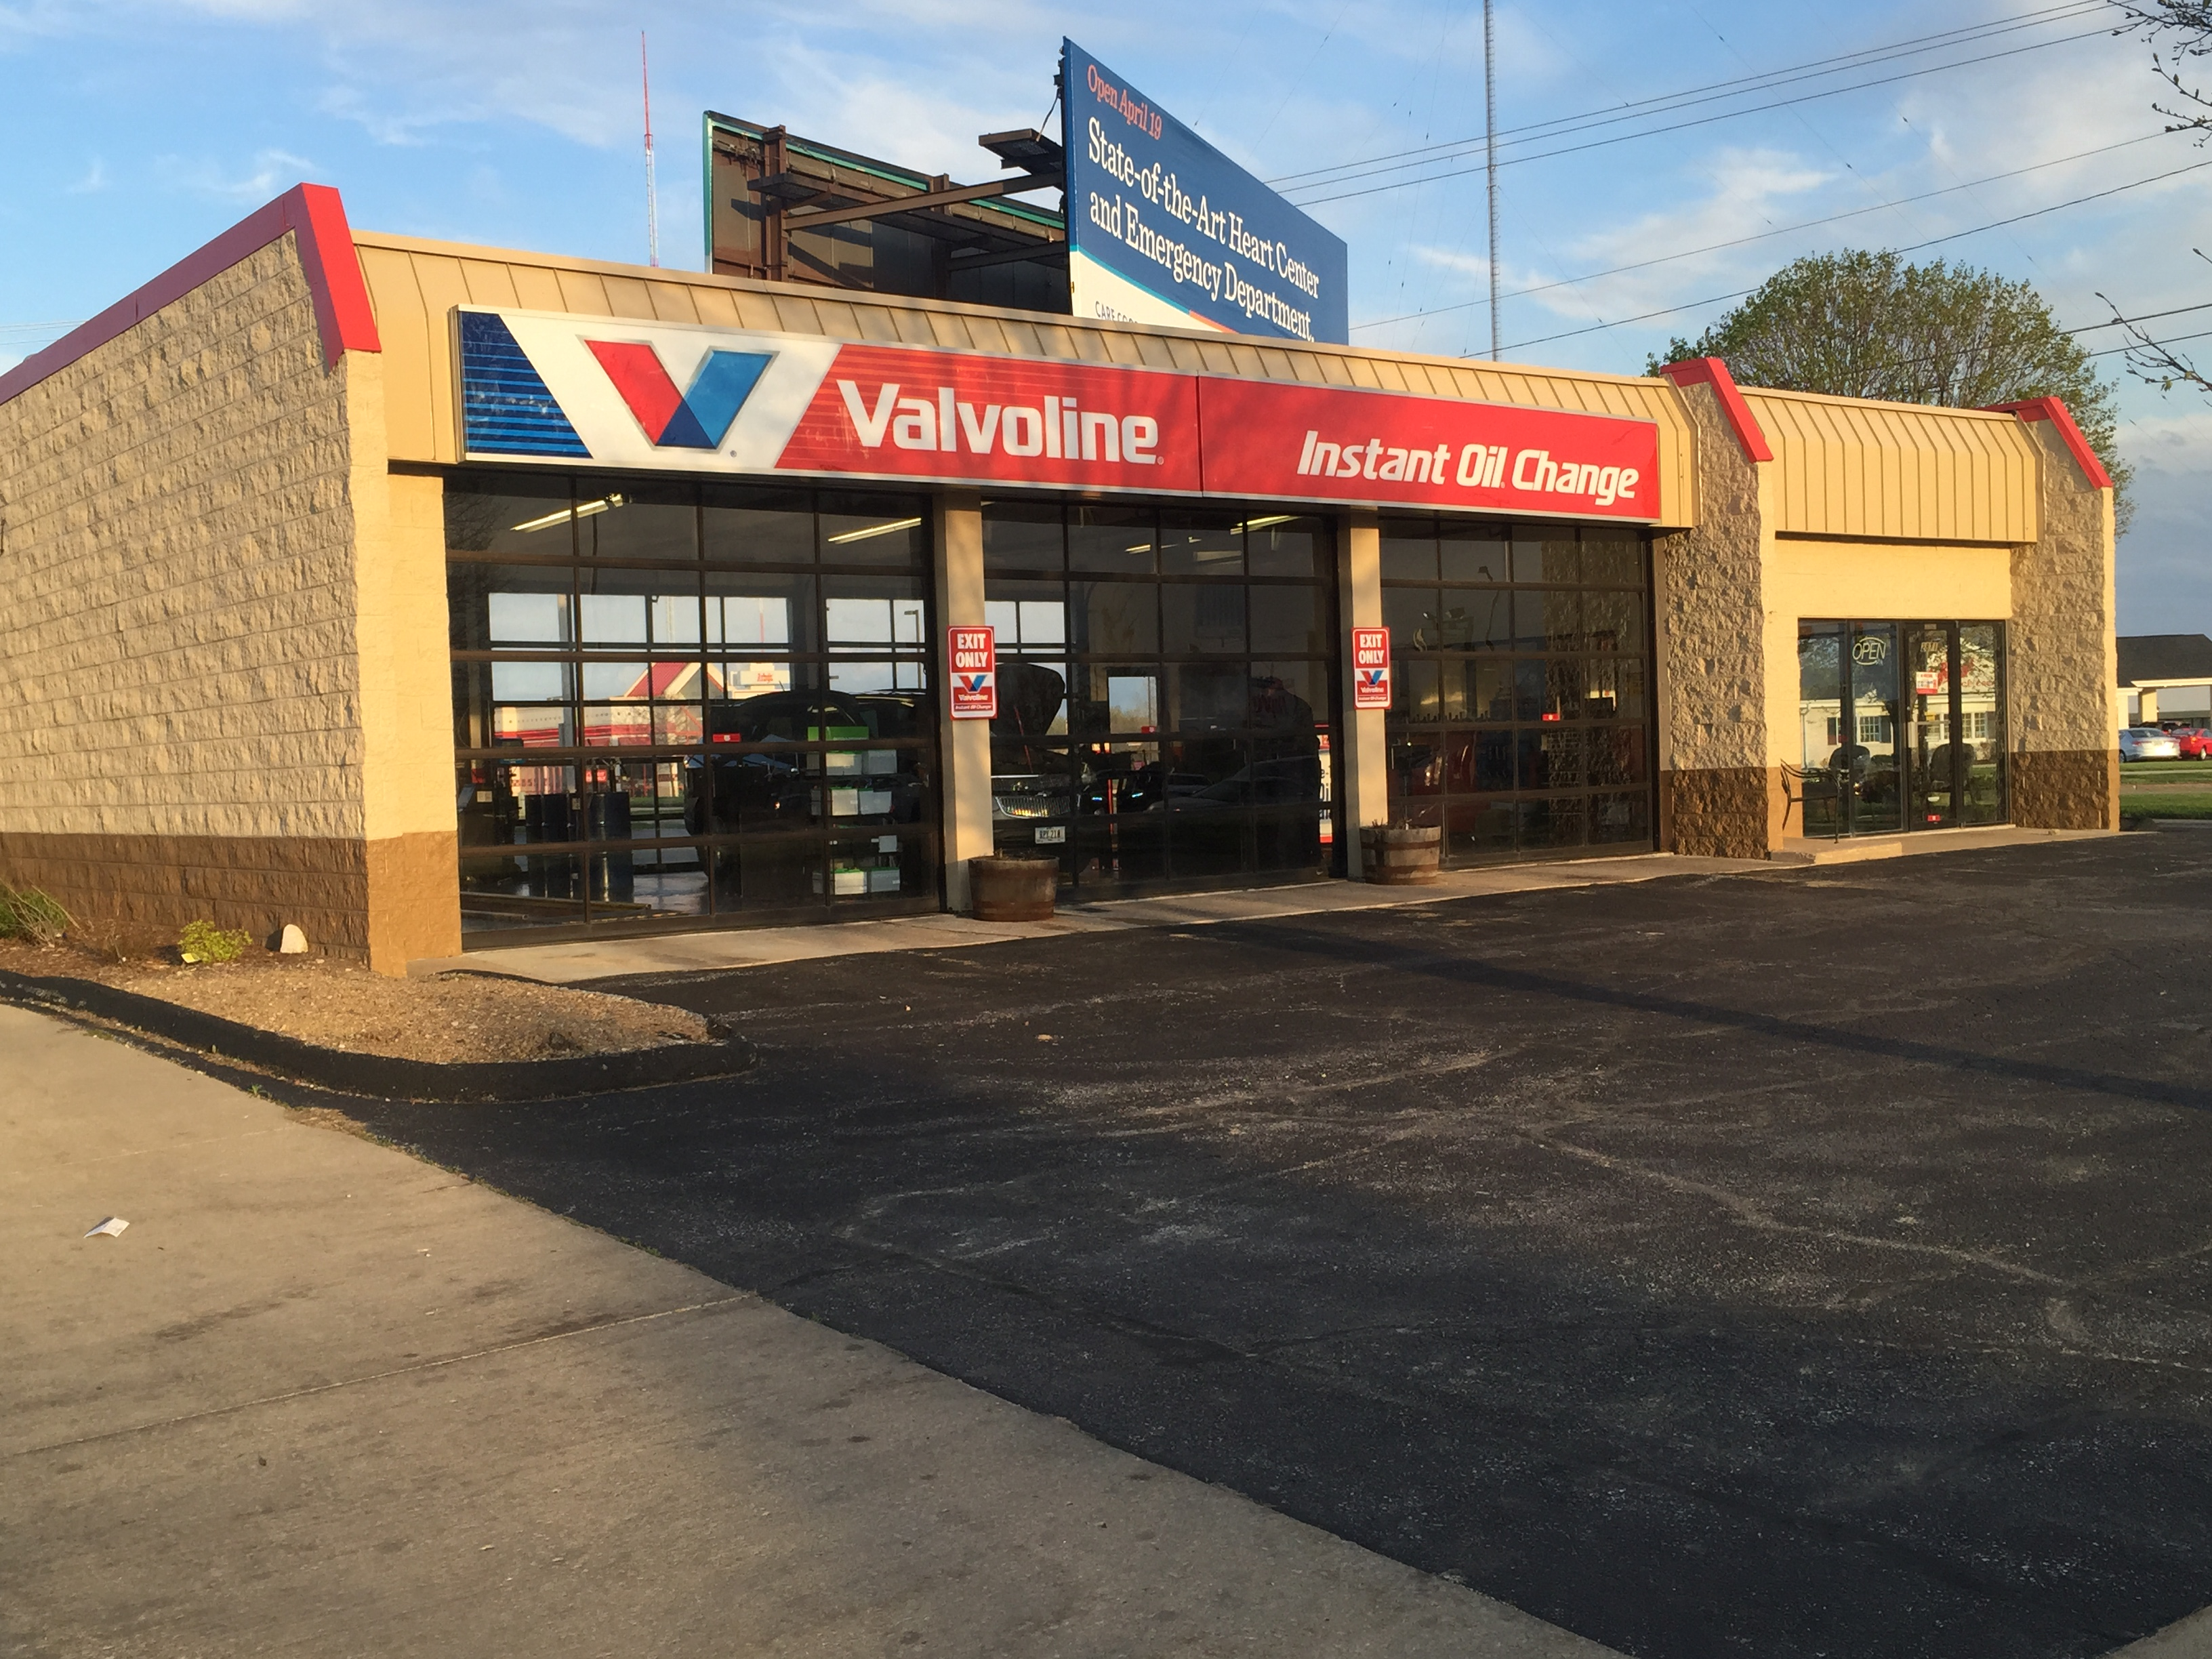 Valvoline Instant Oil Change Bettendorf IA 2871 Devils Glen Road